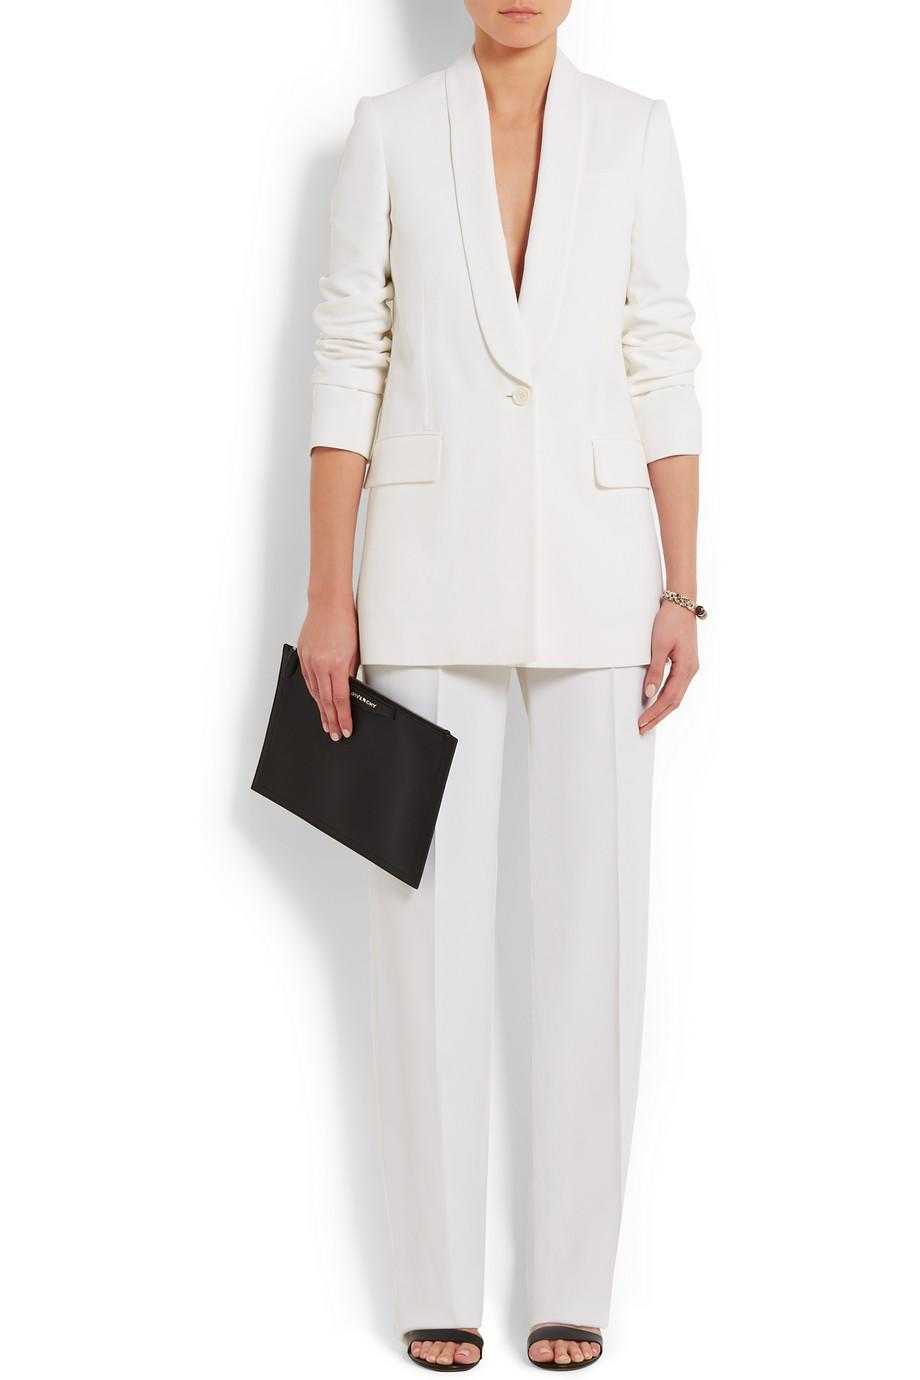 <p>An expensive option, this Givenchy suit is definitely an investment ensemble. Trousers £590, blazer £1520. </p>